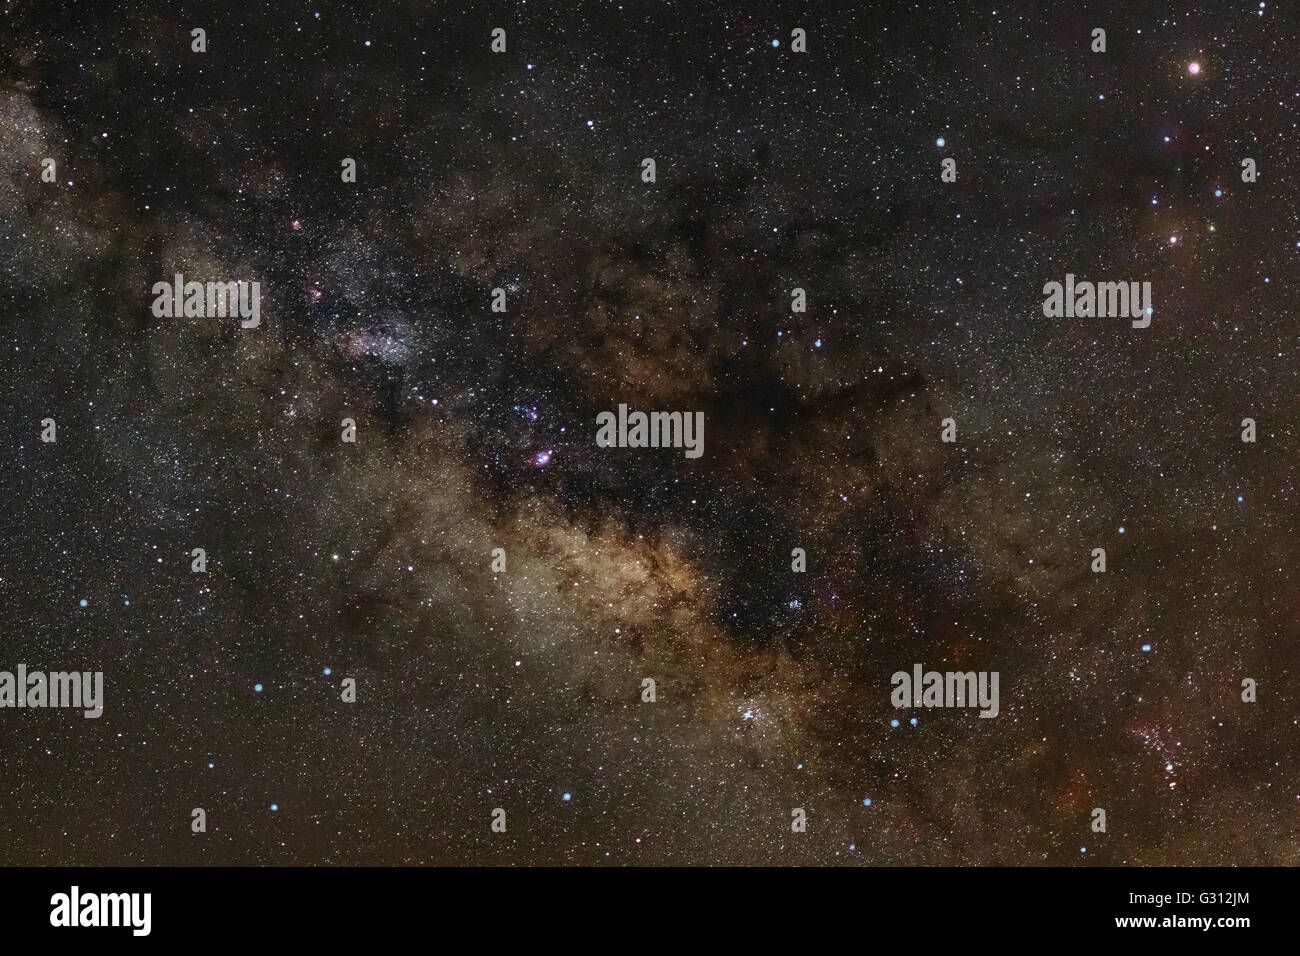 Close-up of Milky Way Galaxy,Long exposure photograph, with grain - Stock Image